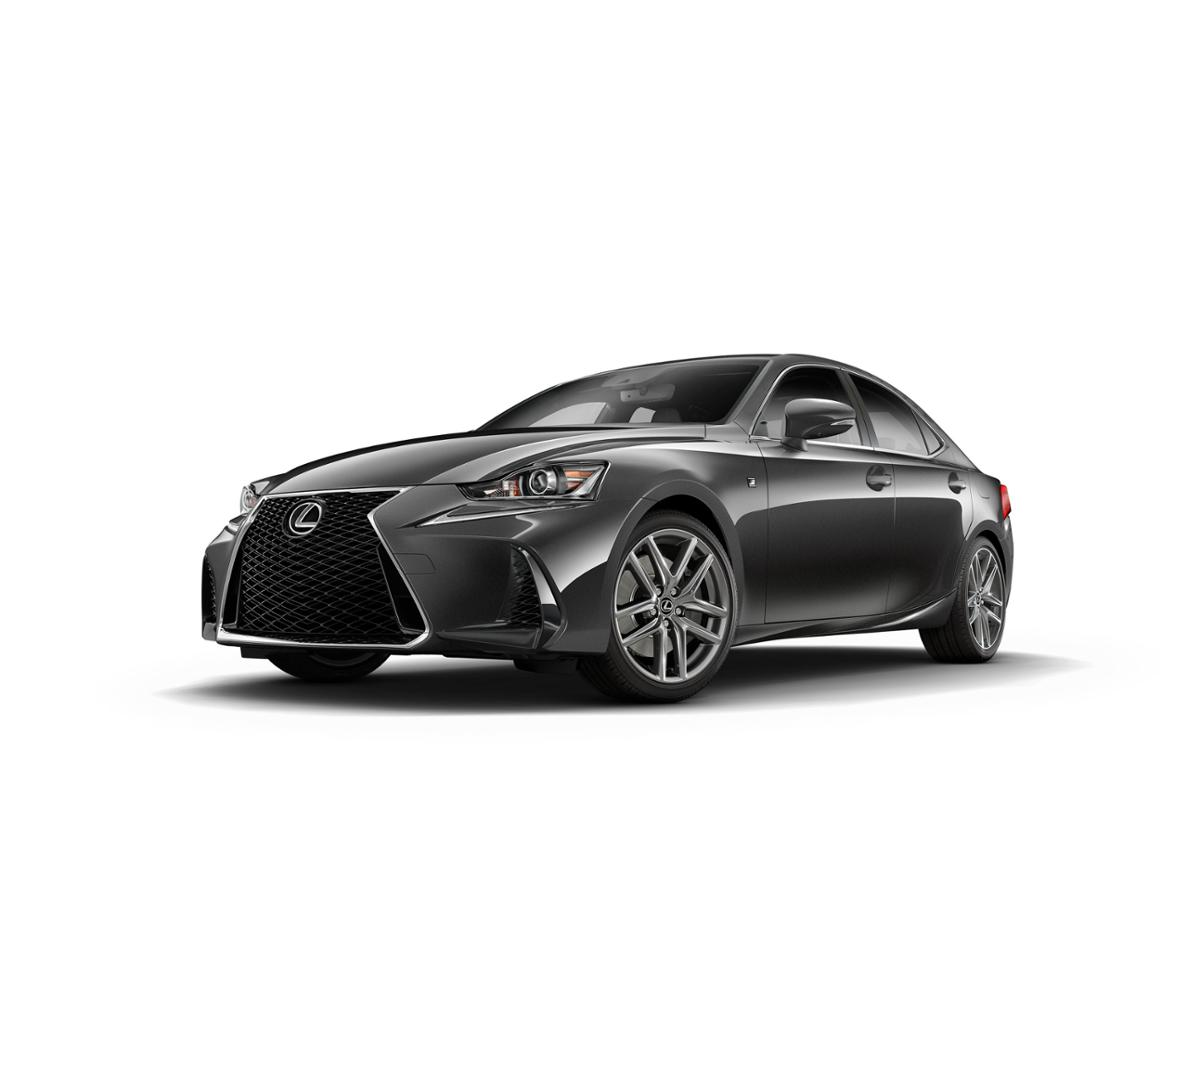 2018 Lexus IS 350 Vehicle Photo in Santa Monica, CA 90404